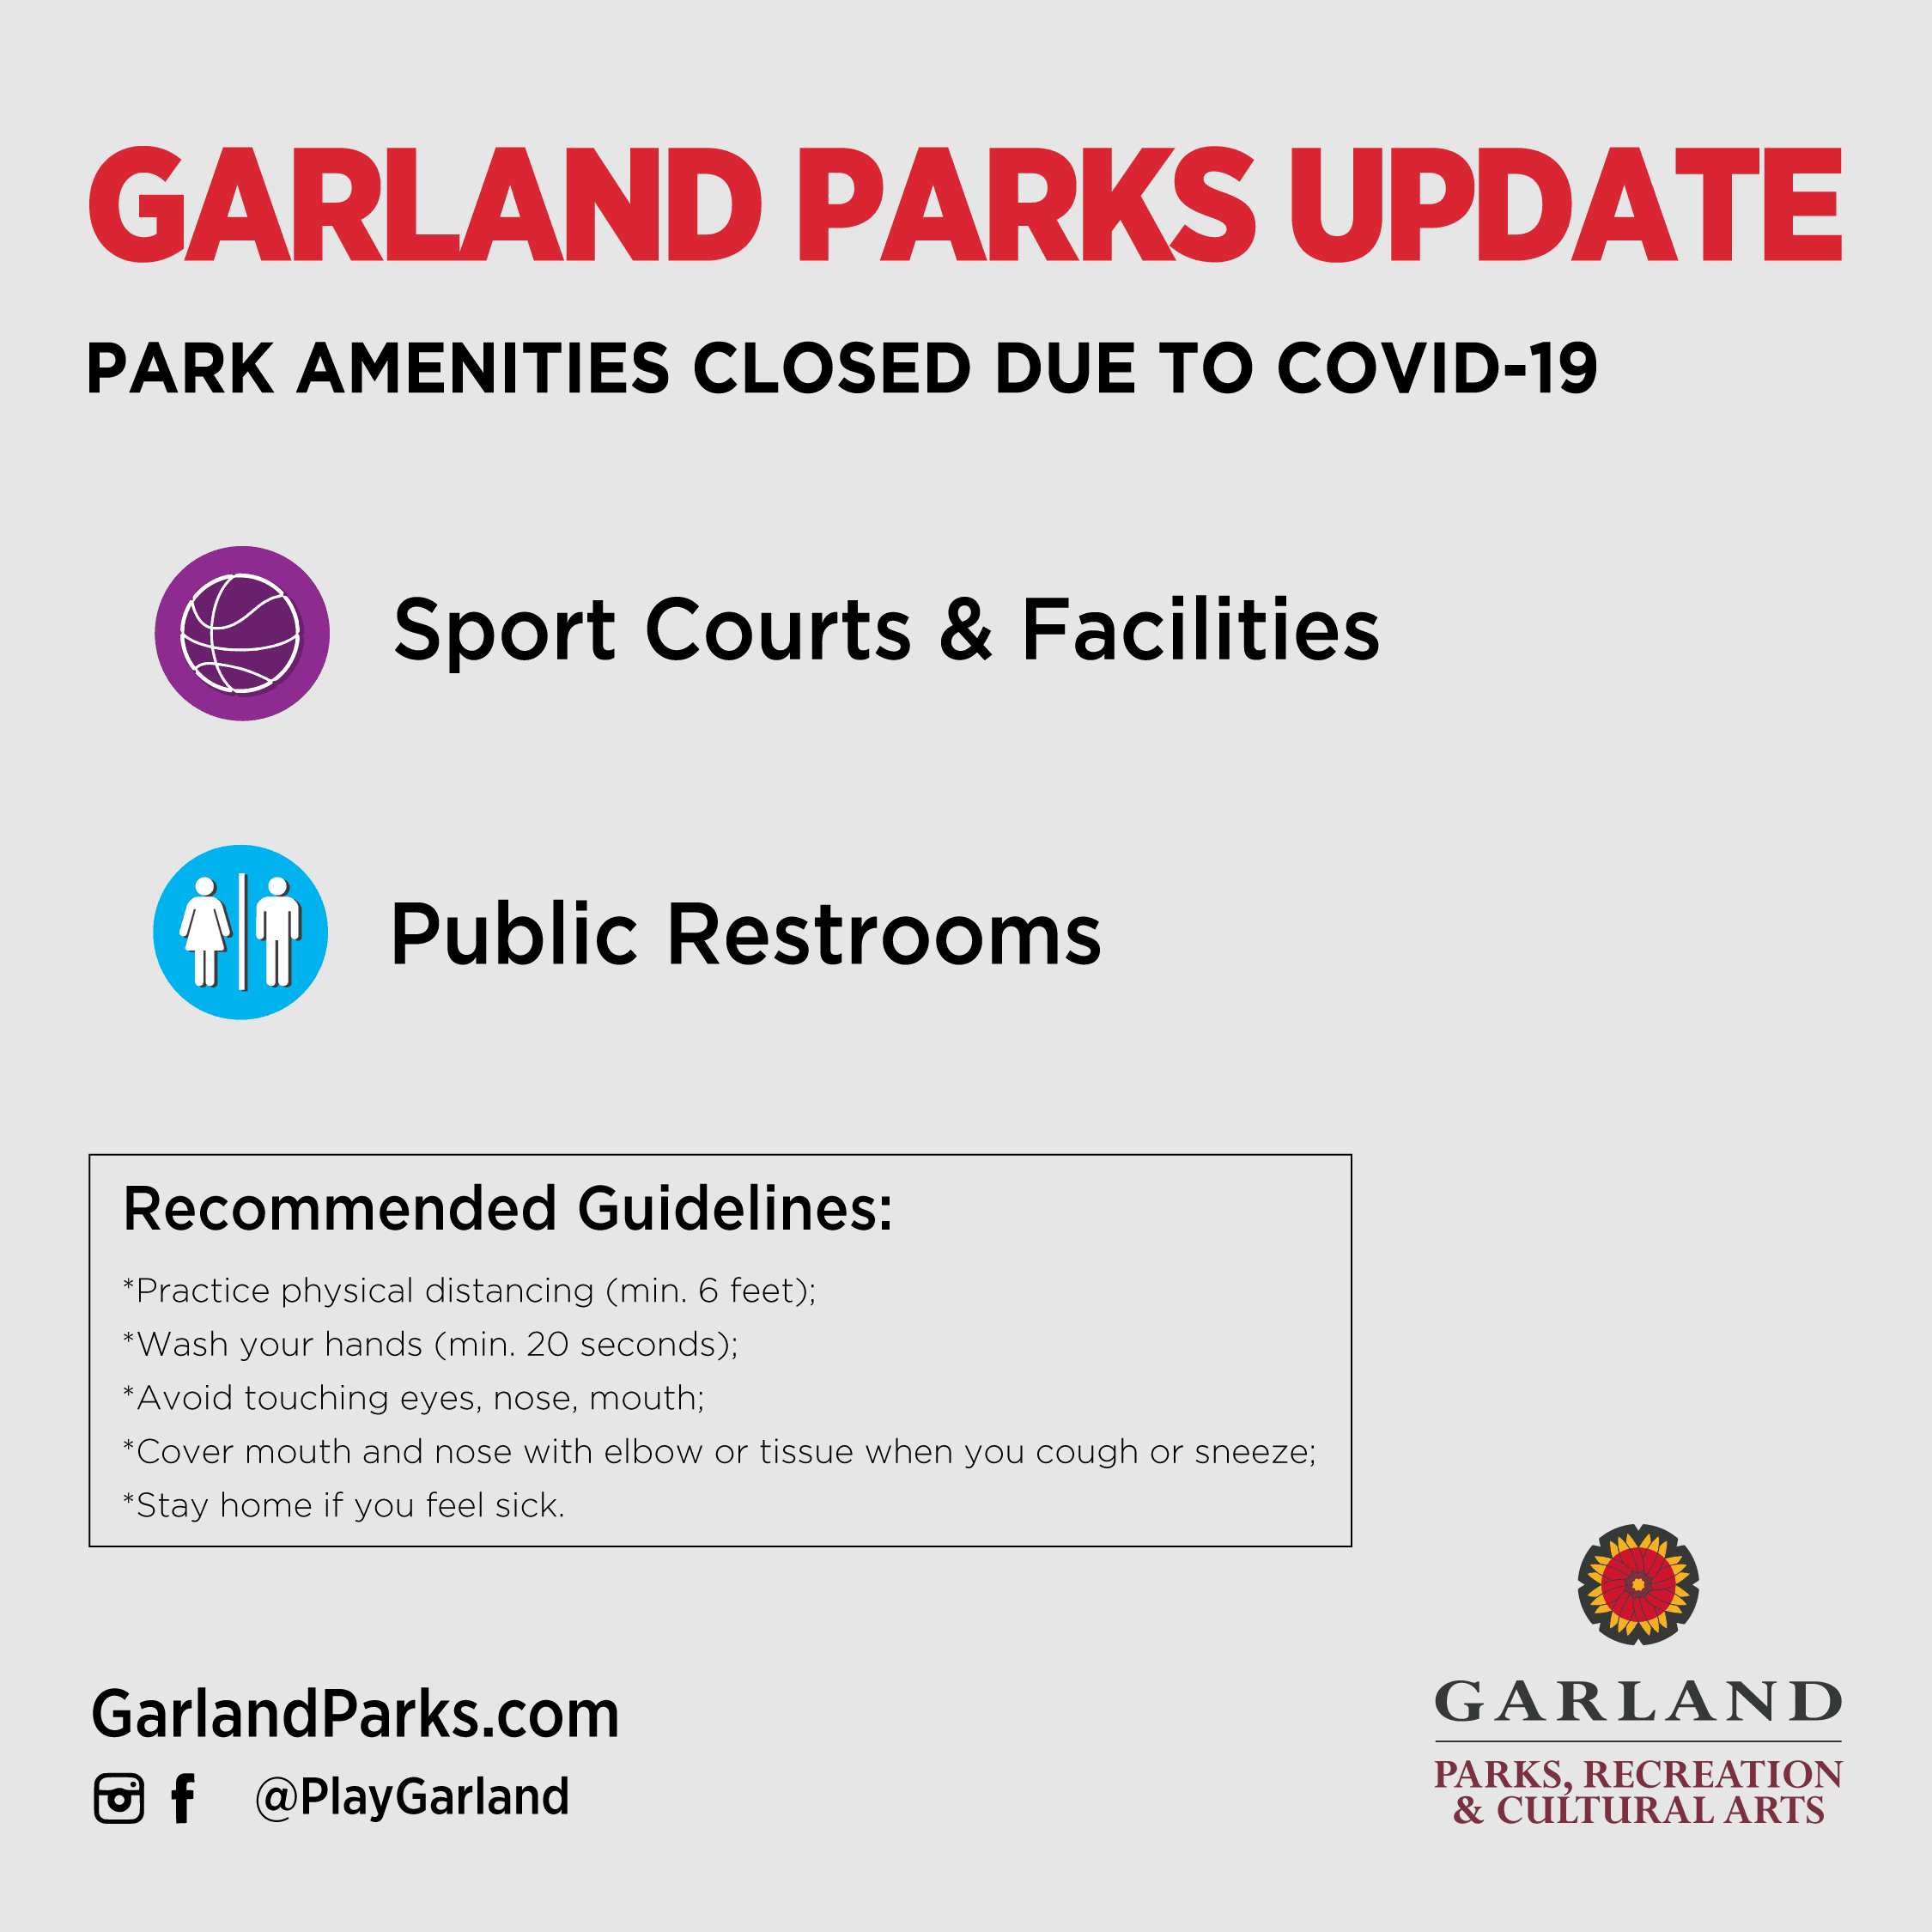 Parks Update April 3, 2020; Closure of all Sport Courts and Public Restrooms at all Parks due to COV